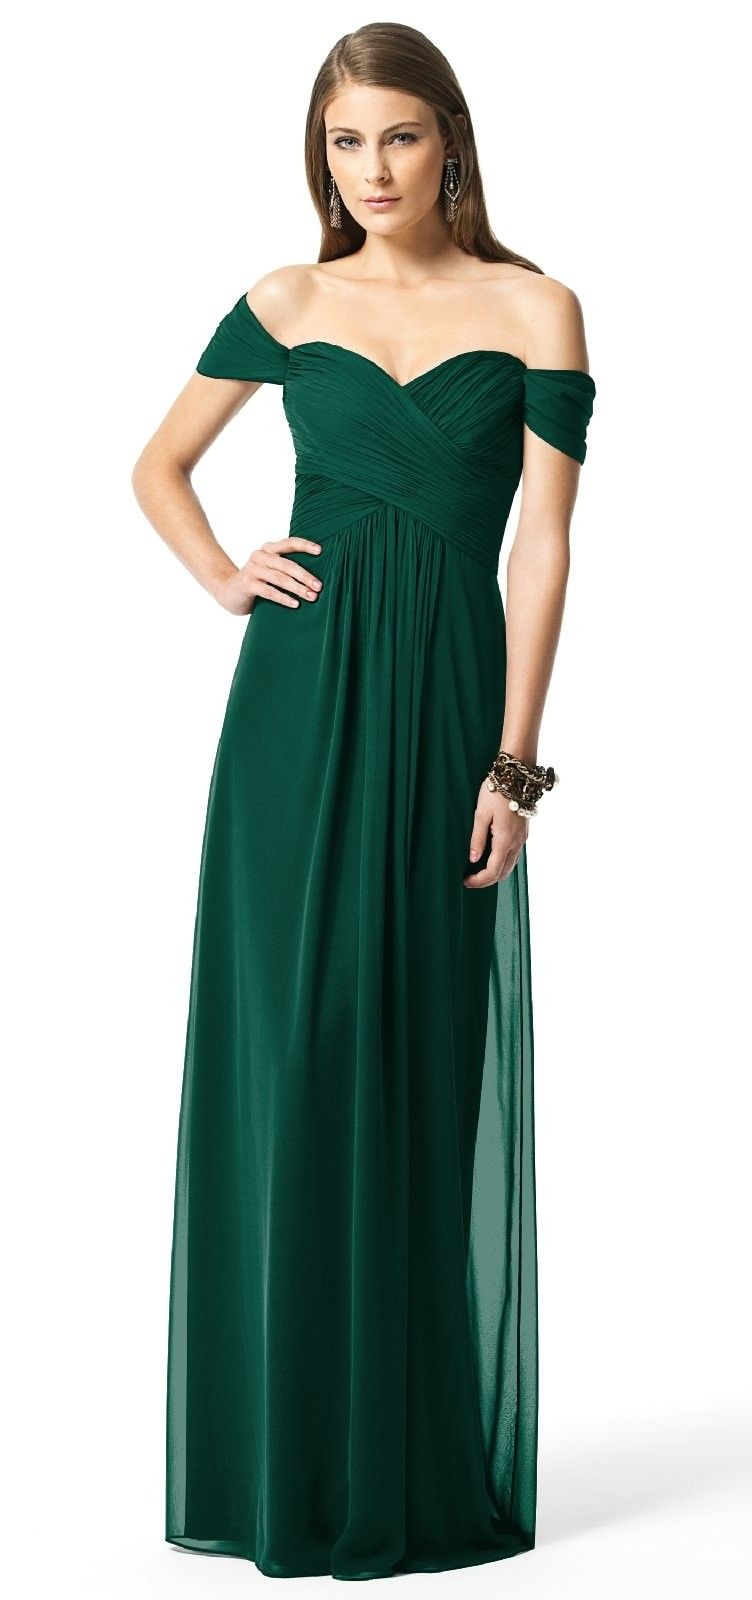 6c63578e Loving your dark green color idea as a possible brides maid dress color...  (love marigold and red too though!! :)